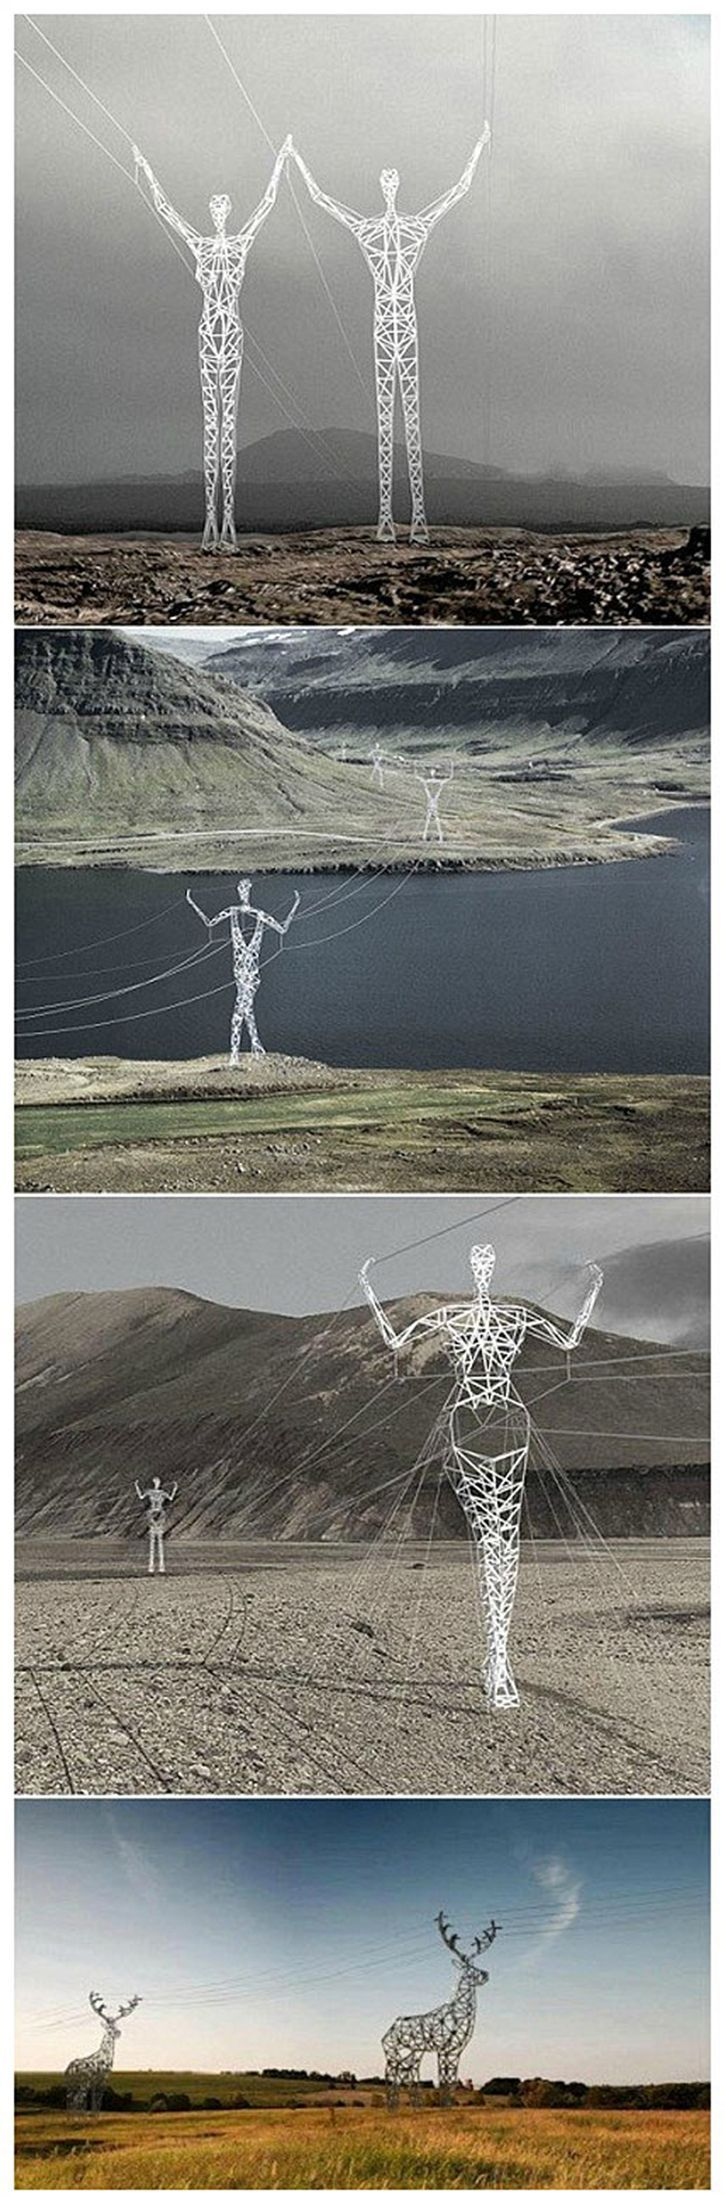 Iceland electric poles� love this! Makes an everyday object that usually ruins scenery a beautiful piece of architecture. Should be done everywhere in my opinion